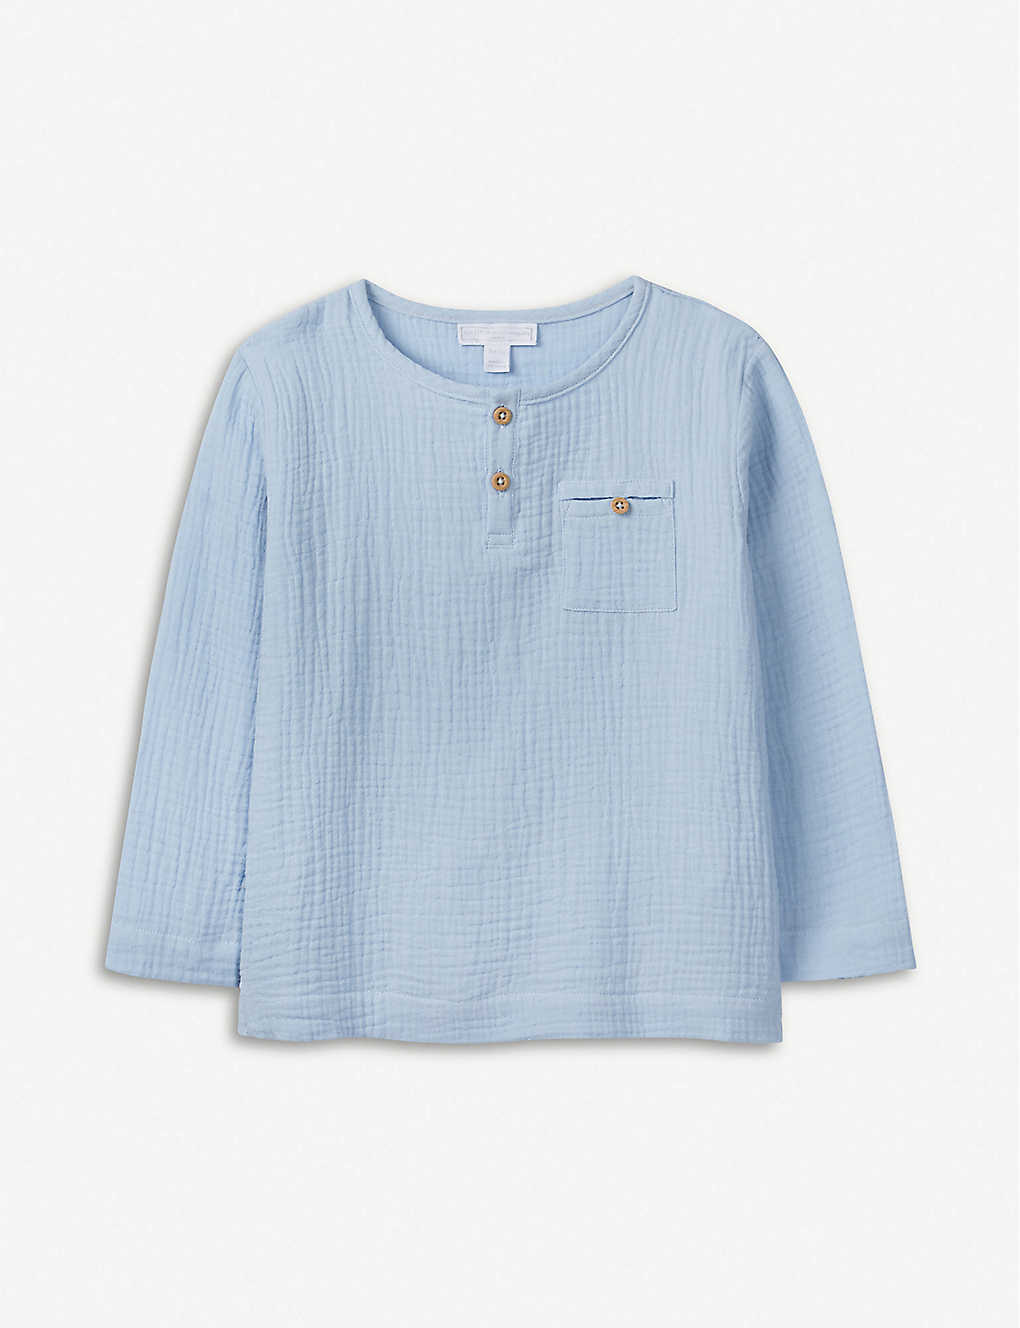 THE LITTLE WHITE COMPANY: Crinkled cotton top 1-6 years